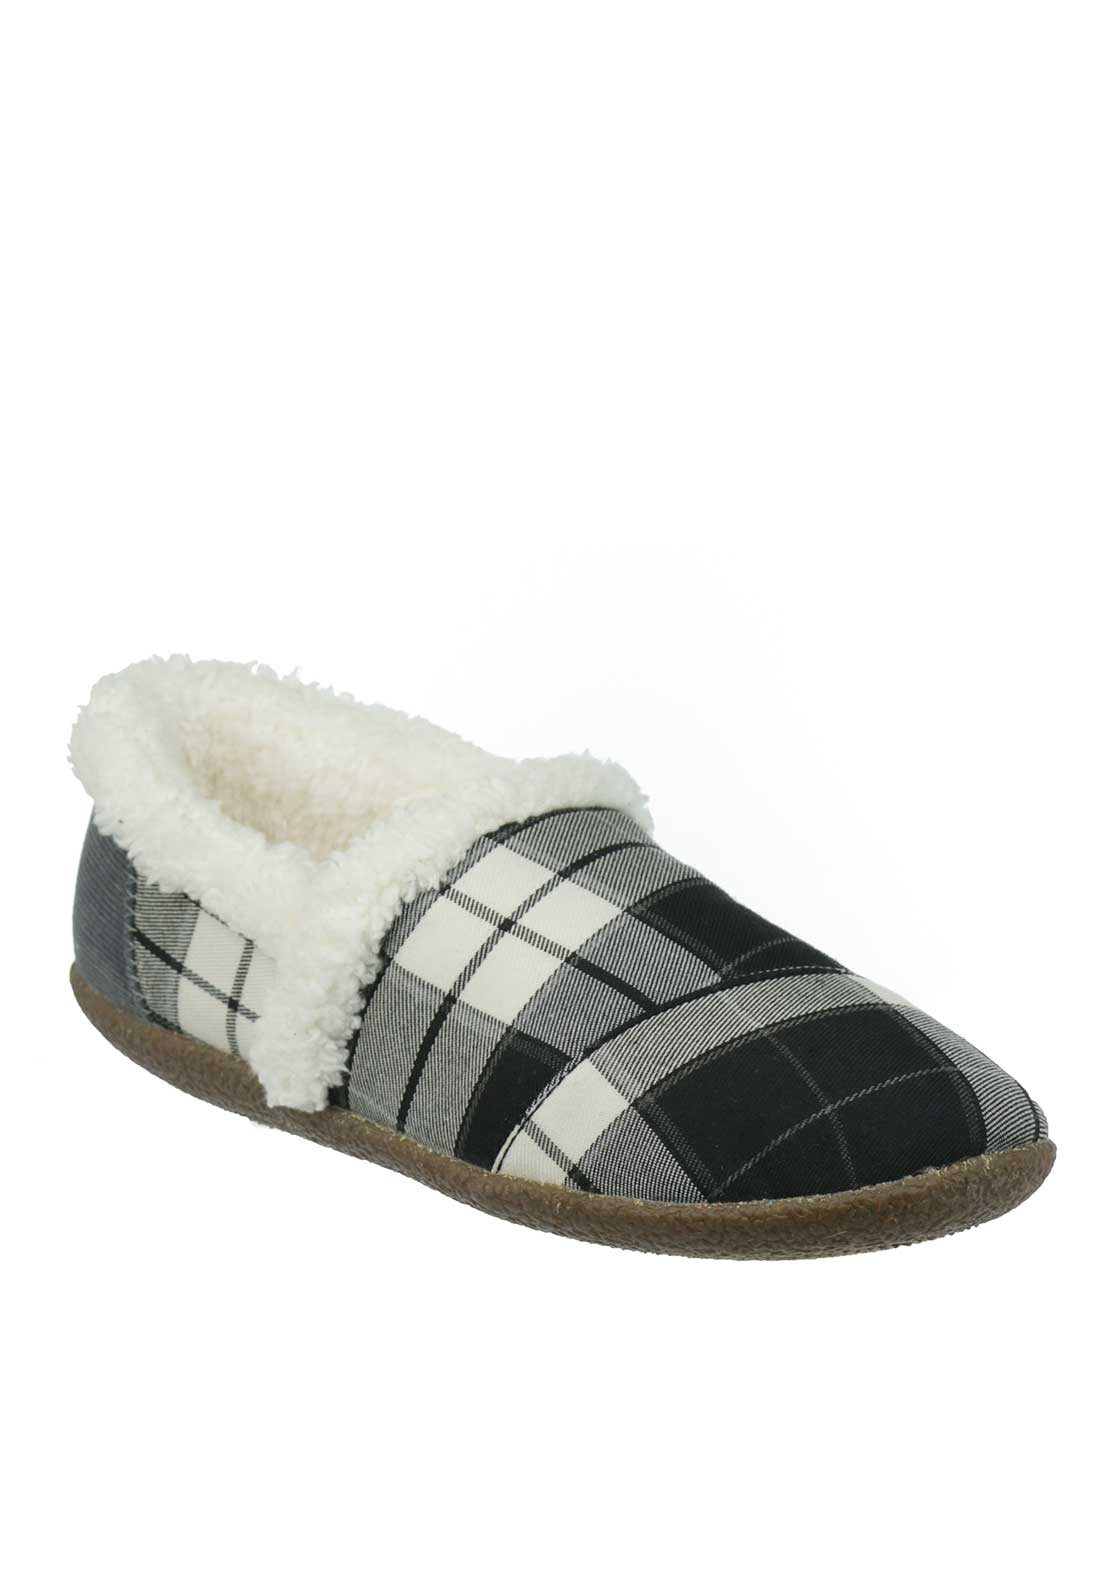 TOMS Womens Plaid House Slippers, Black